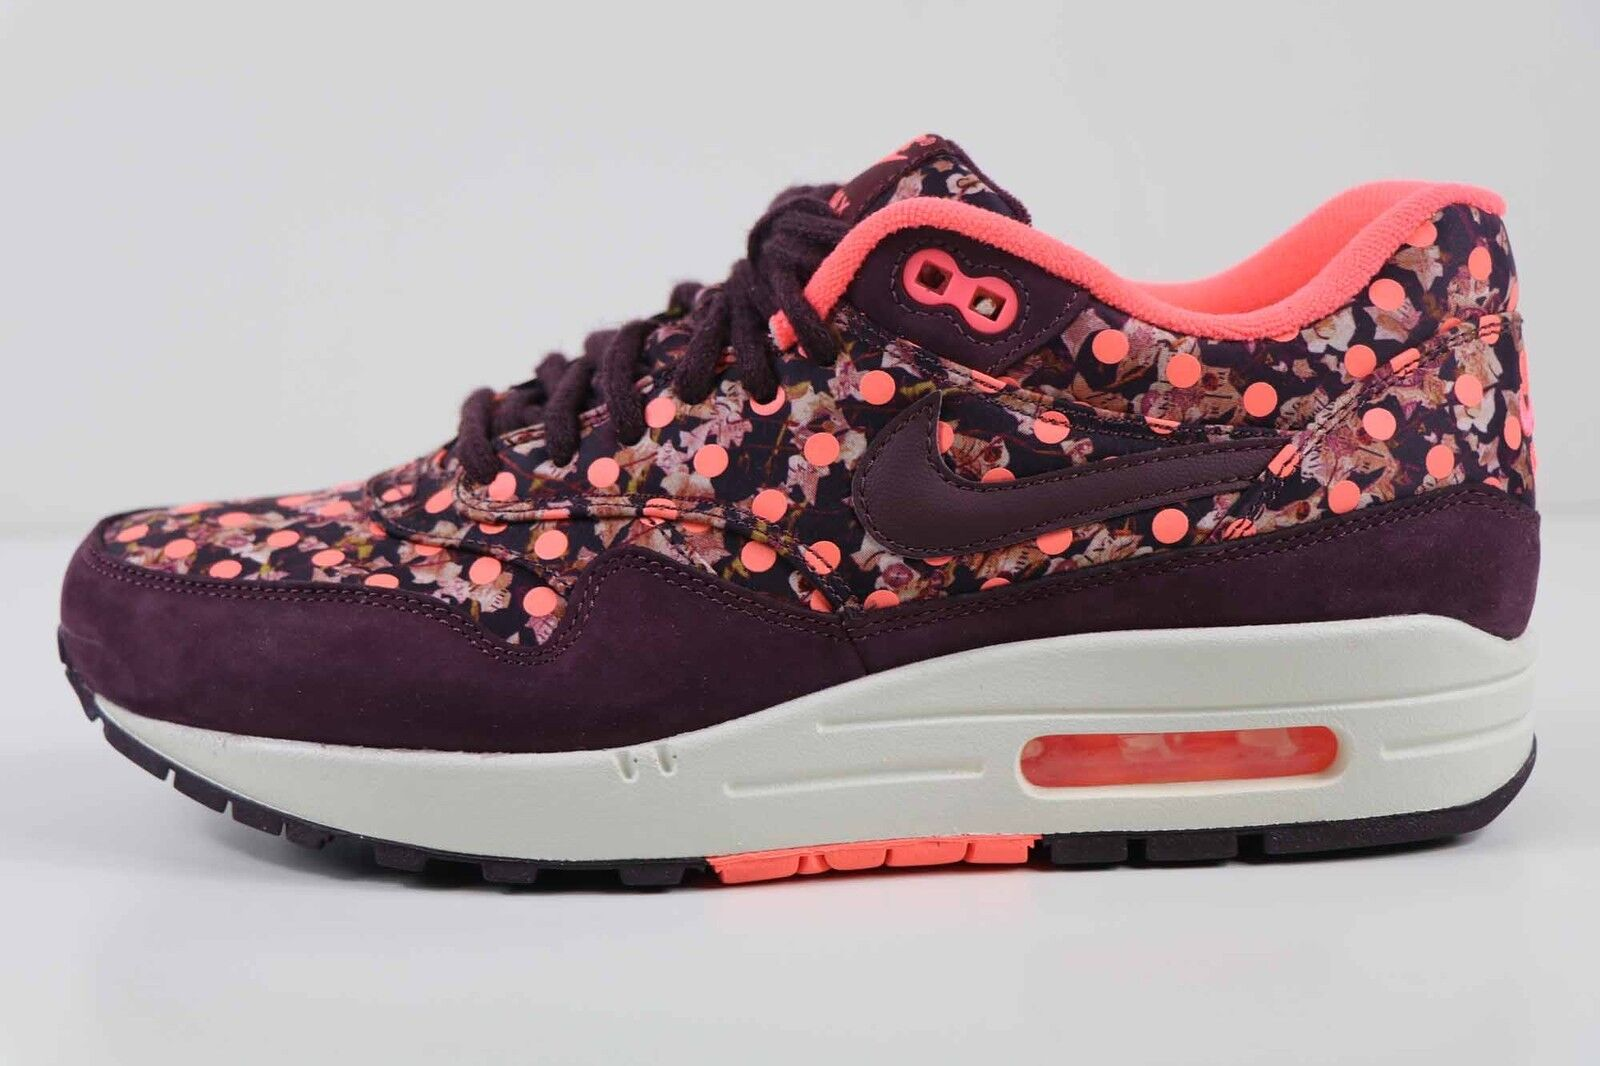 Nike Women's Air Max 1 Lib QS Liberty Burgundy Mango 540855 600 Size 8 New